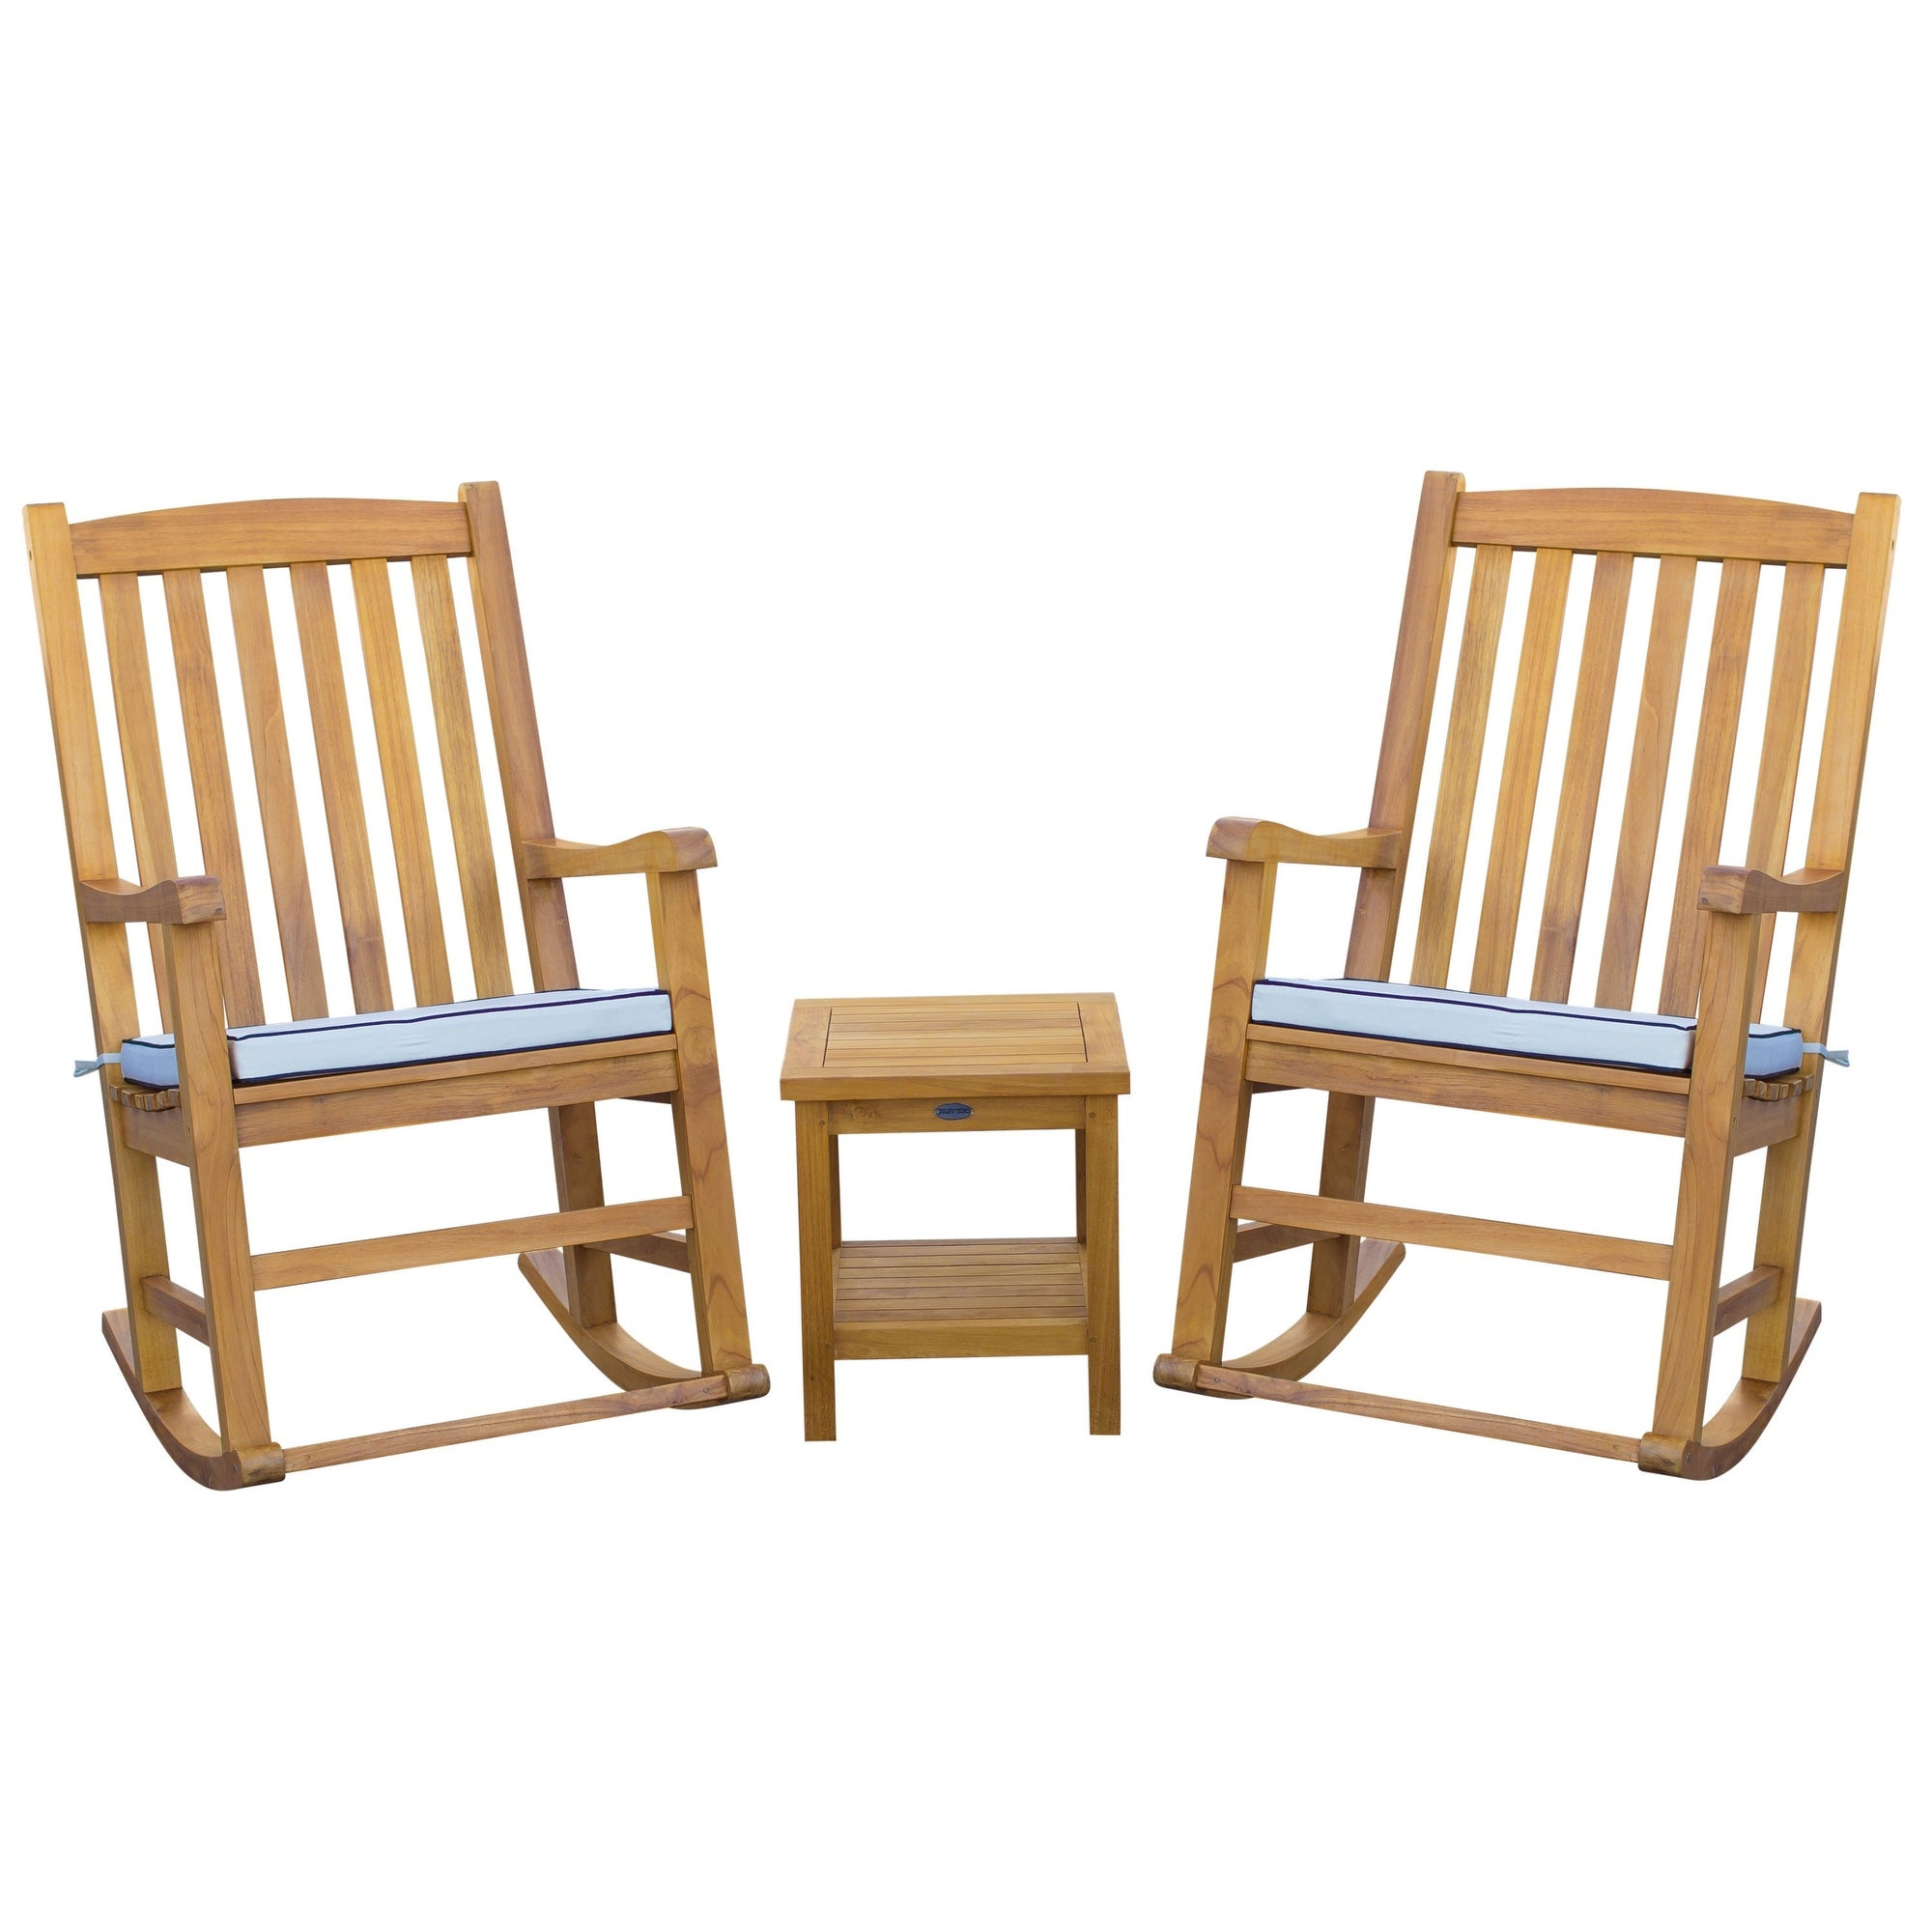 Picture of: Seven Seas Teak 3 Piece Teak Wood Oceanside Patio Lounge Set With 2 Rocking Chairs And Side Table Overstock 31904804